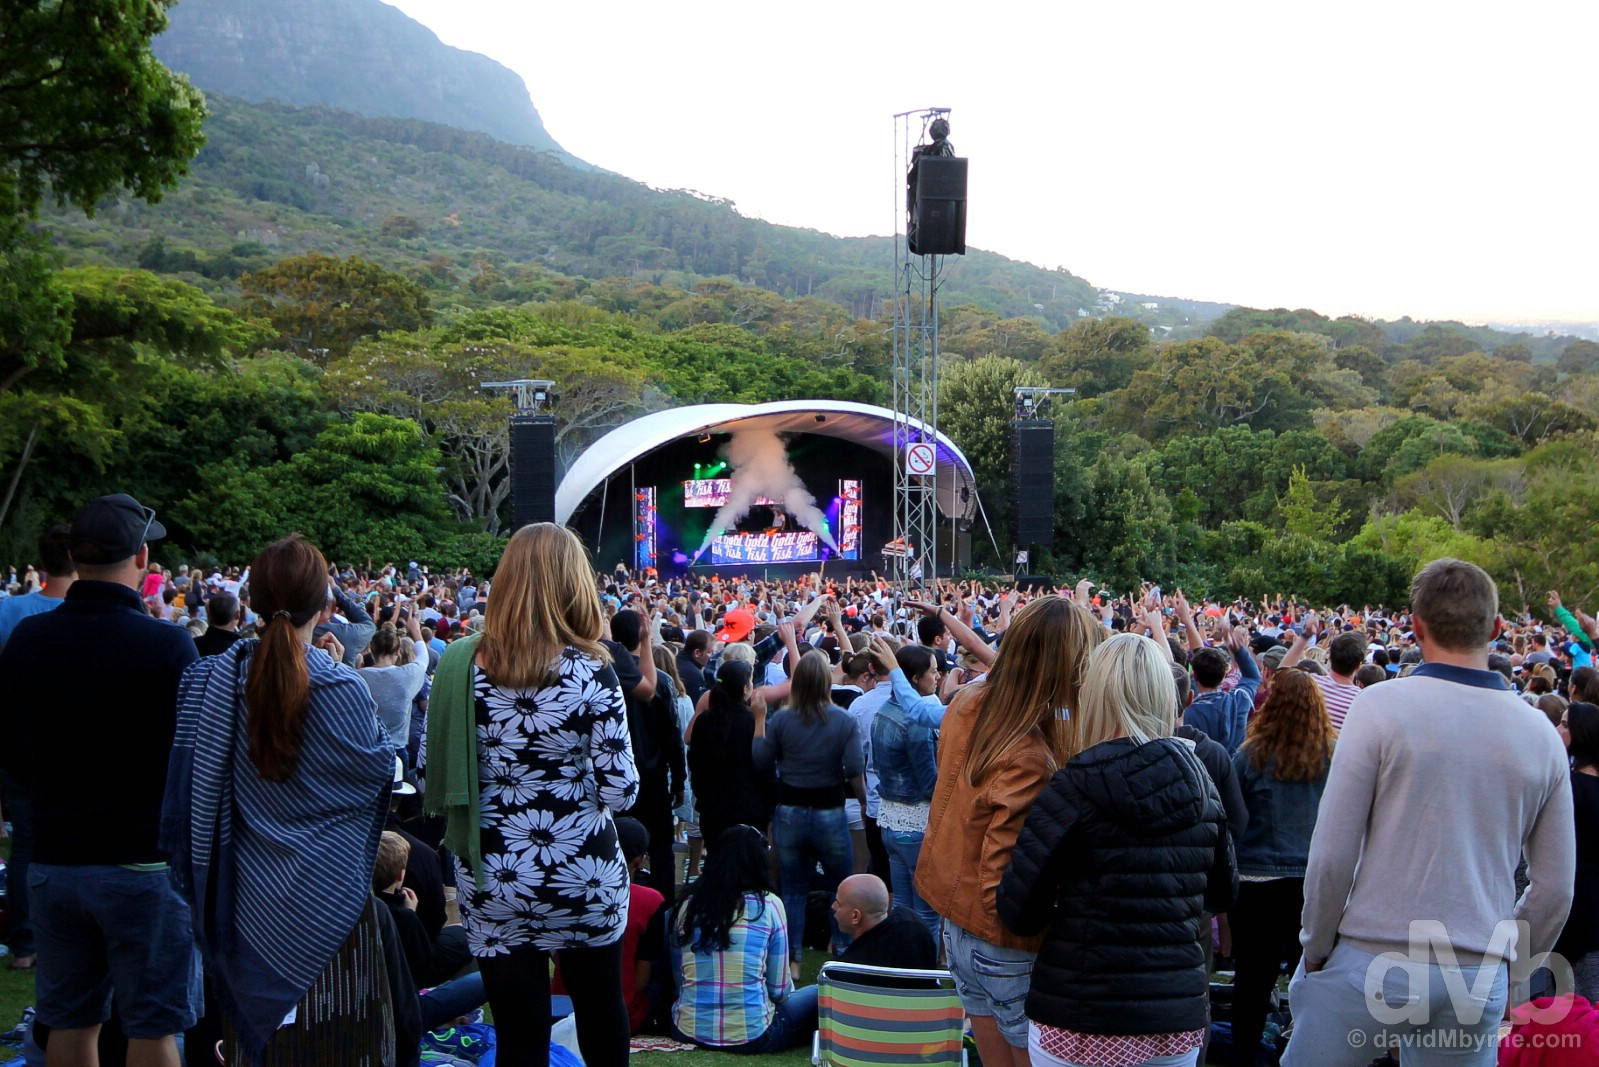 Homegrown electronica and dance group Goldfish performing as part of the Kirstenbosch Summer Sunset Concerts in Kirstenbosch National Botanical Garden on the slopes of Table Mountain, Cape Town, Western Cape, South Africa. February 19, 2017.